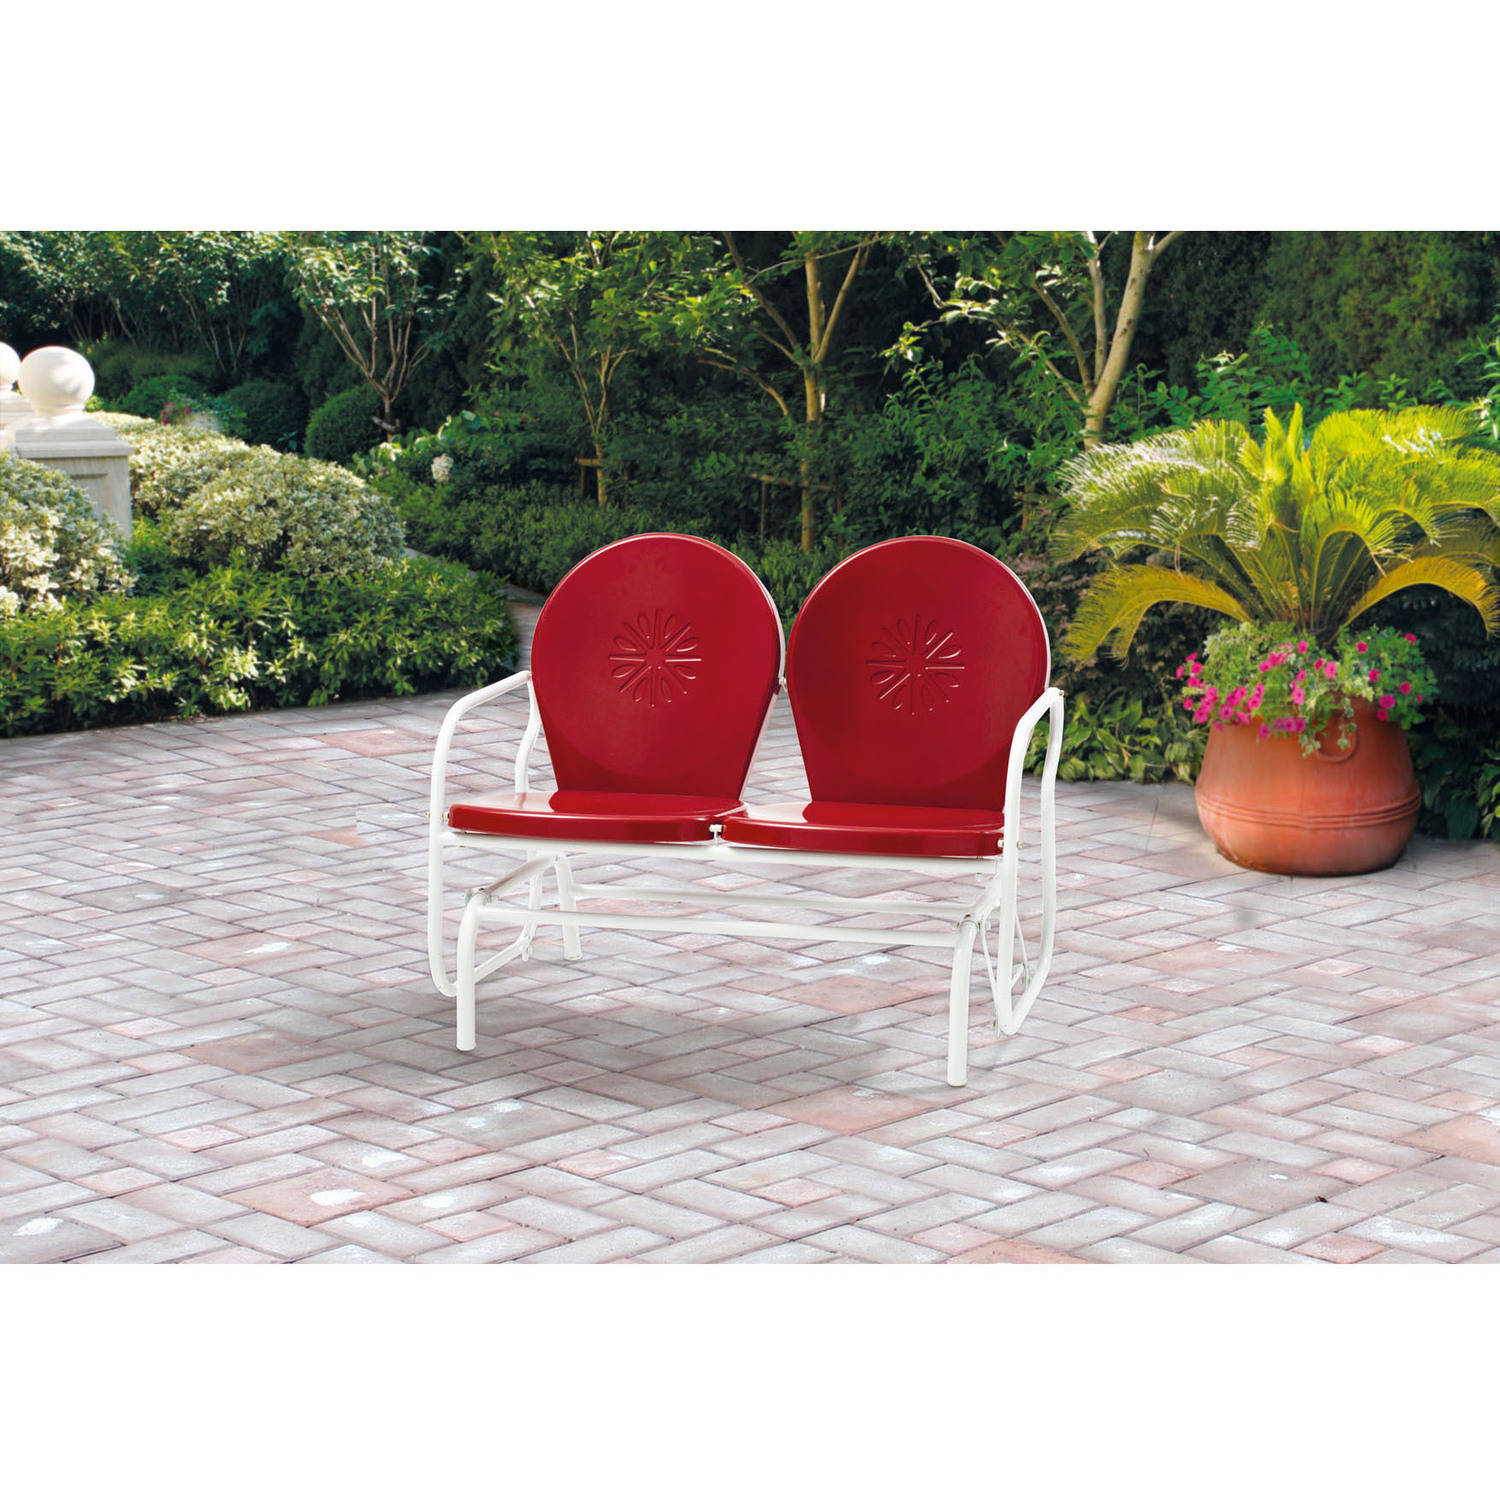 Mainstays Retro Metal Glider, Red, Seats 2